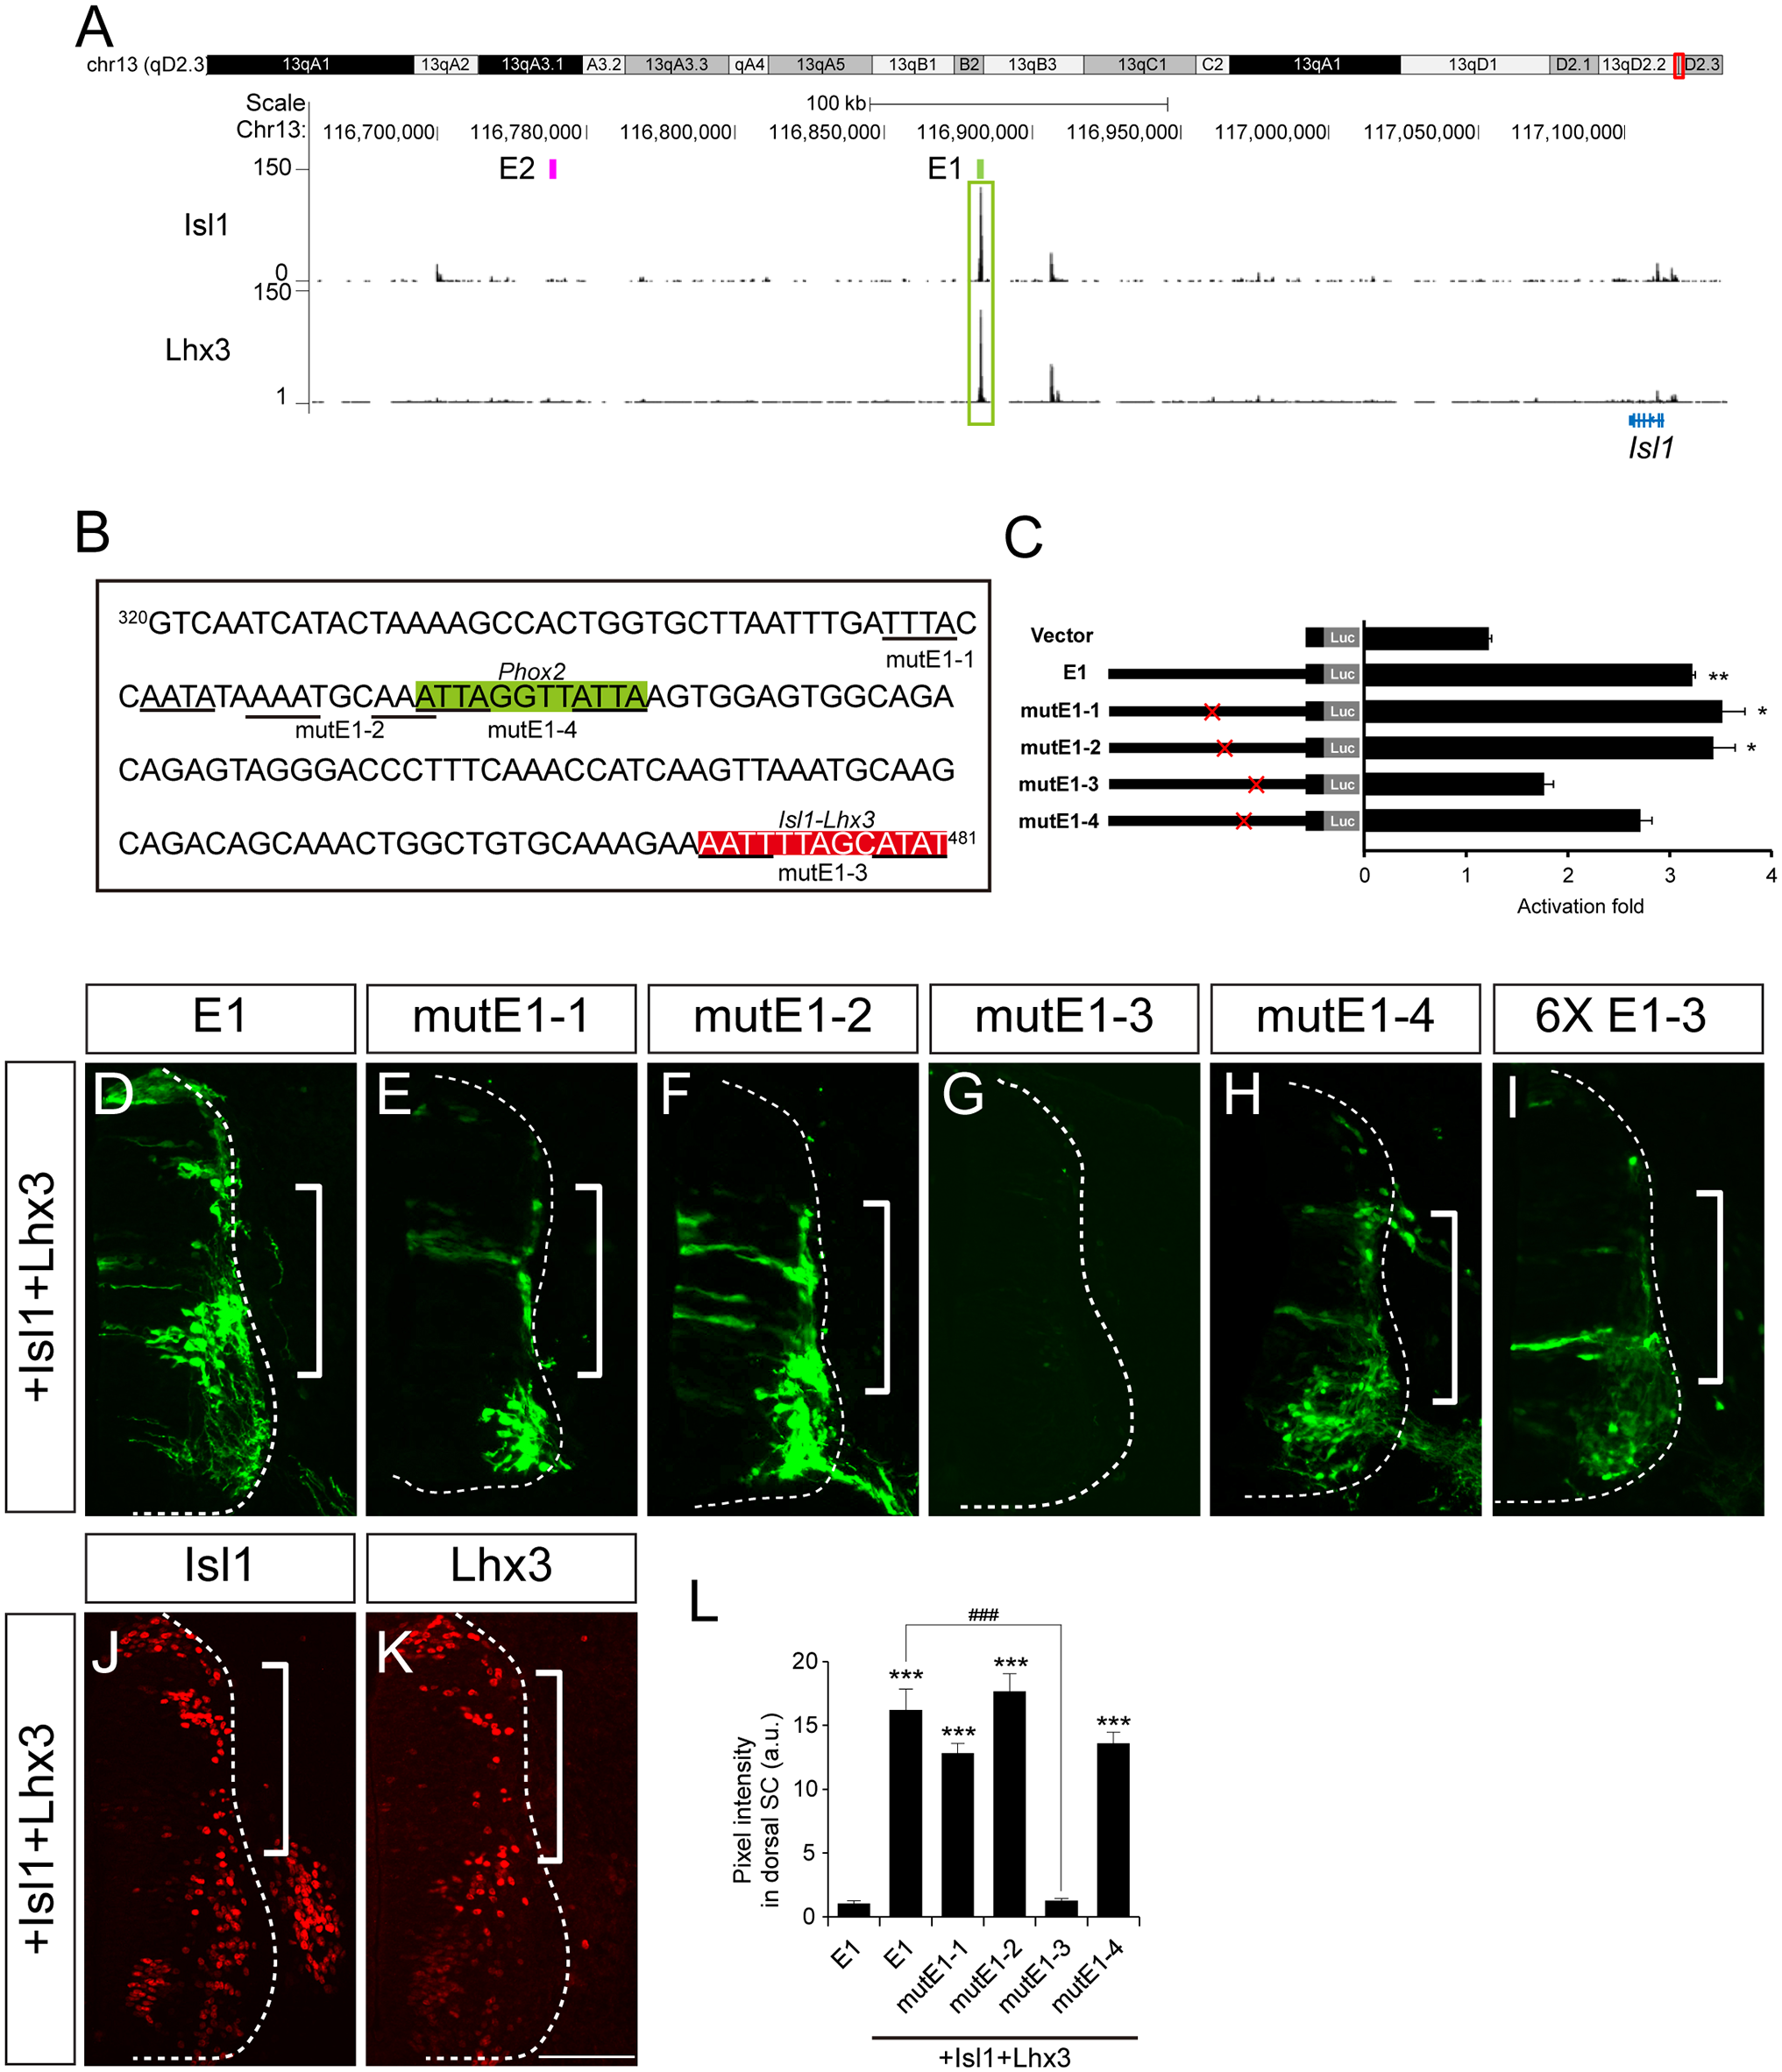 The Isl1-Lhx3 complex activates the E1 enhancer in somatic motor neurons.